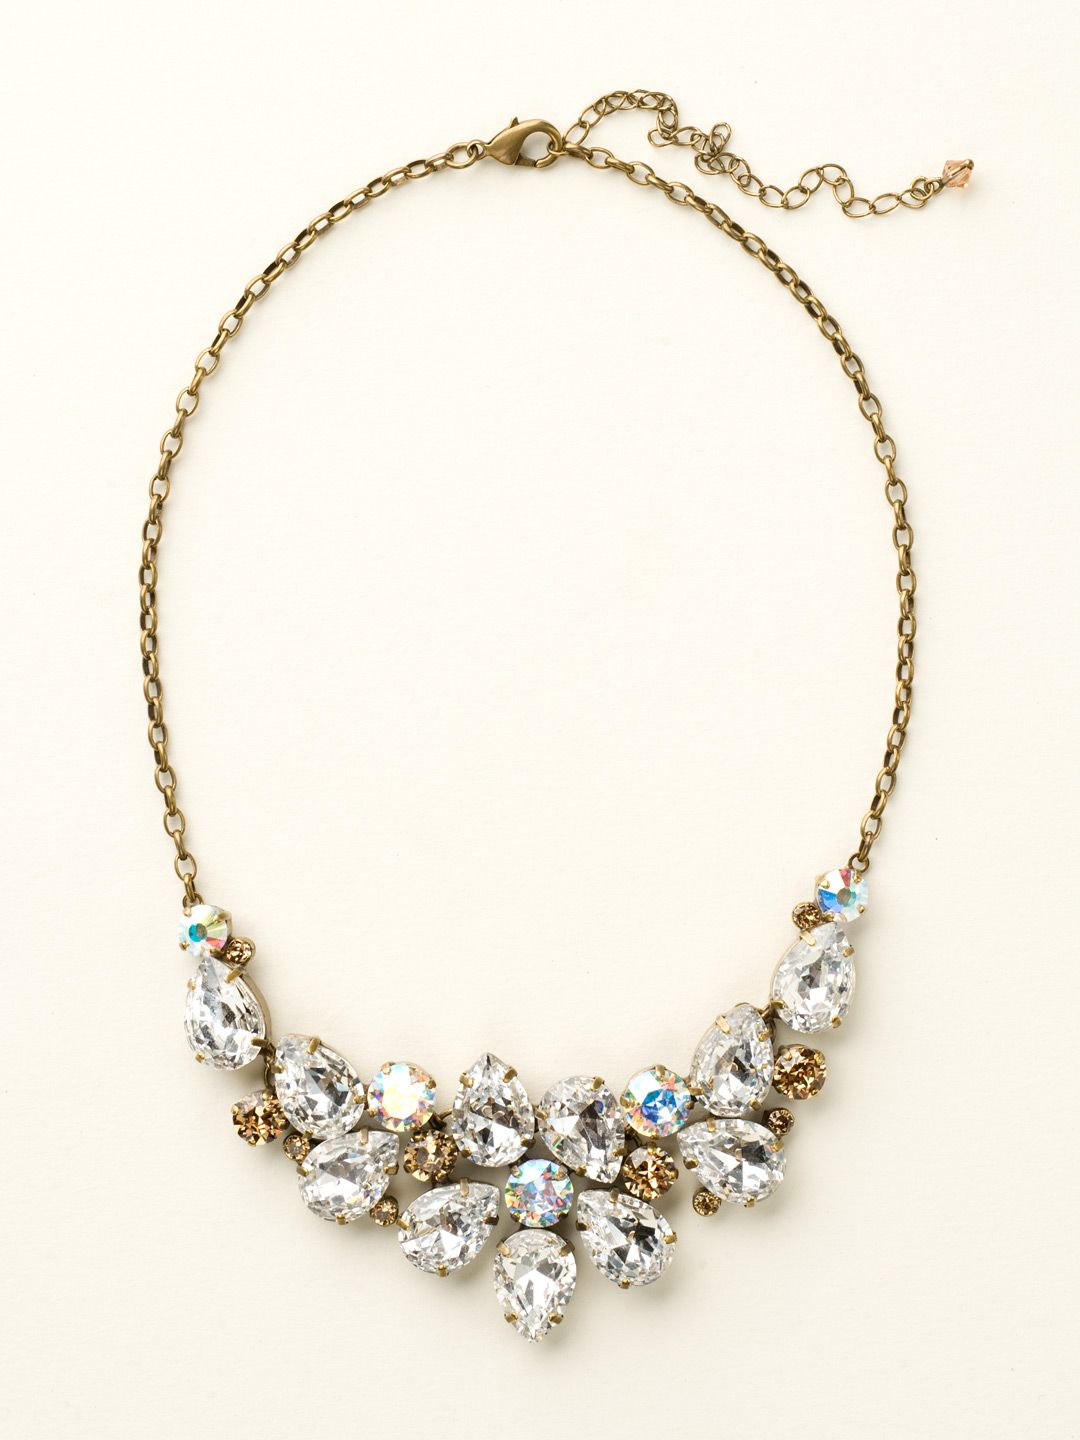 Dare To Pear Crystal Bib Necklace in Neutral Territory - Sorrelli